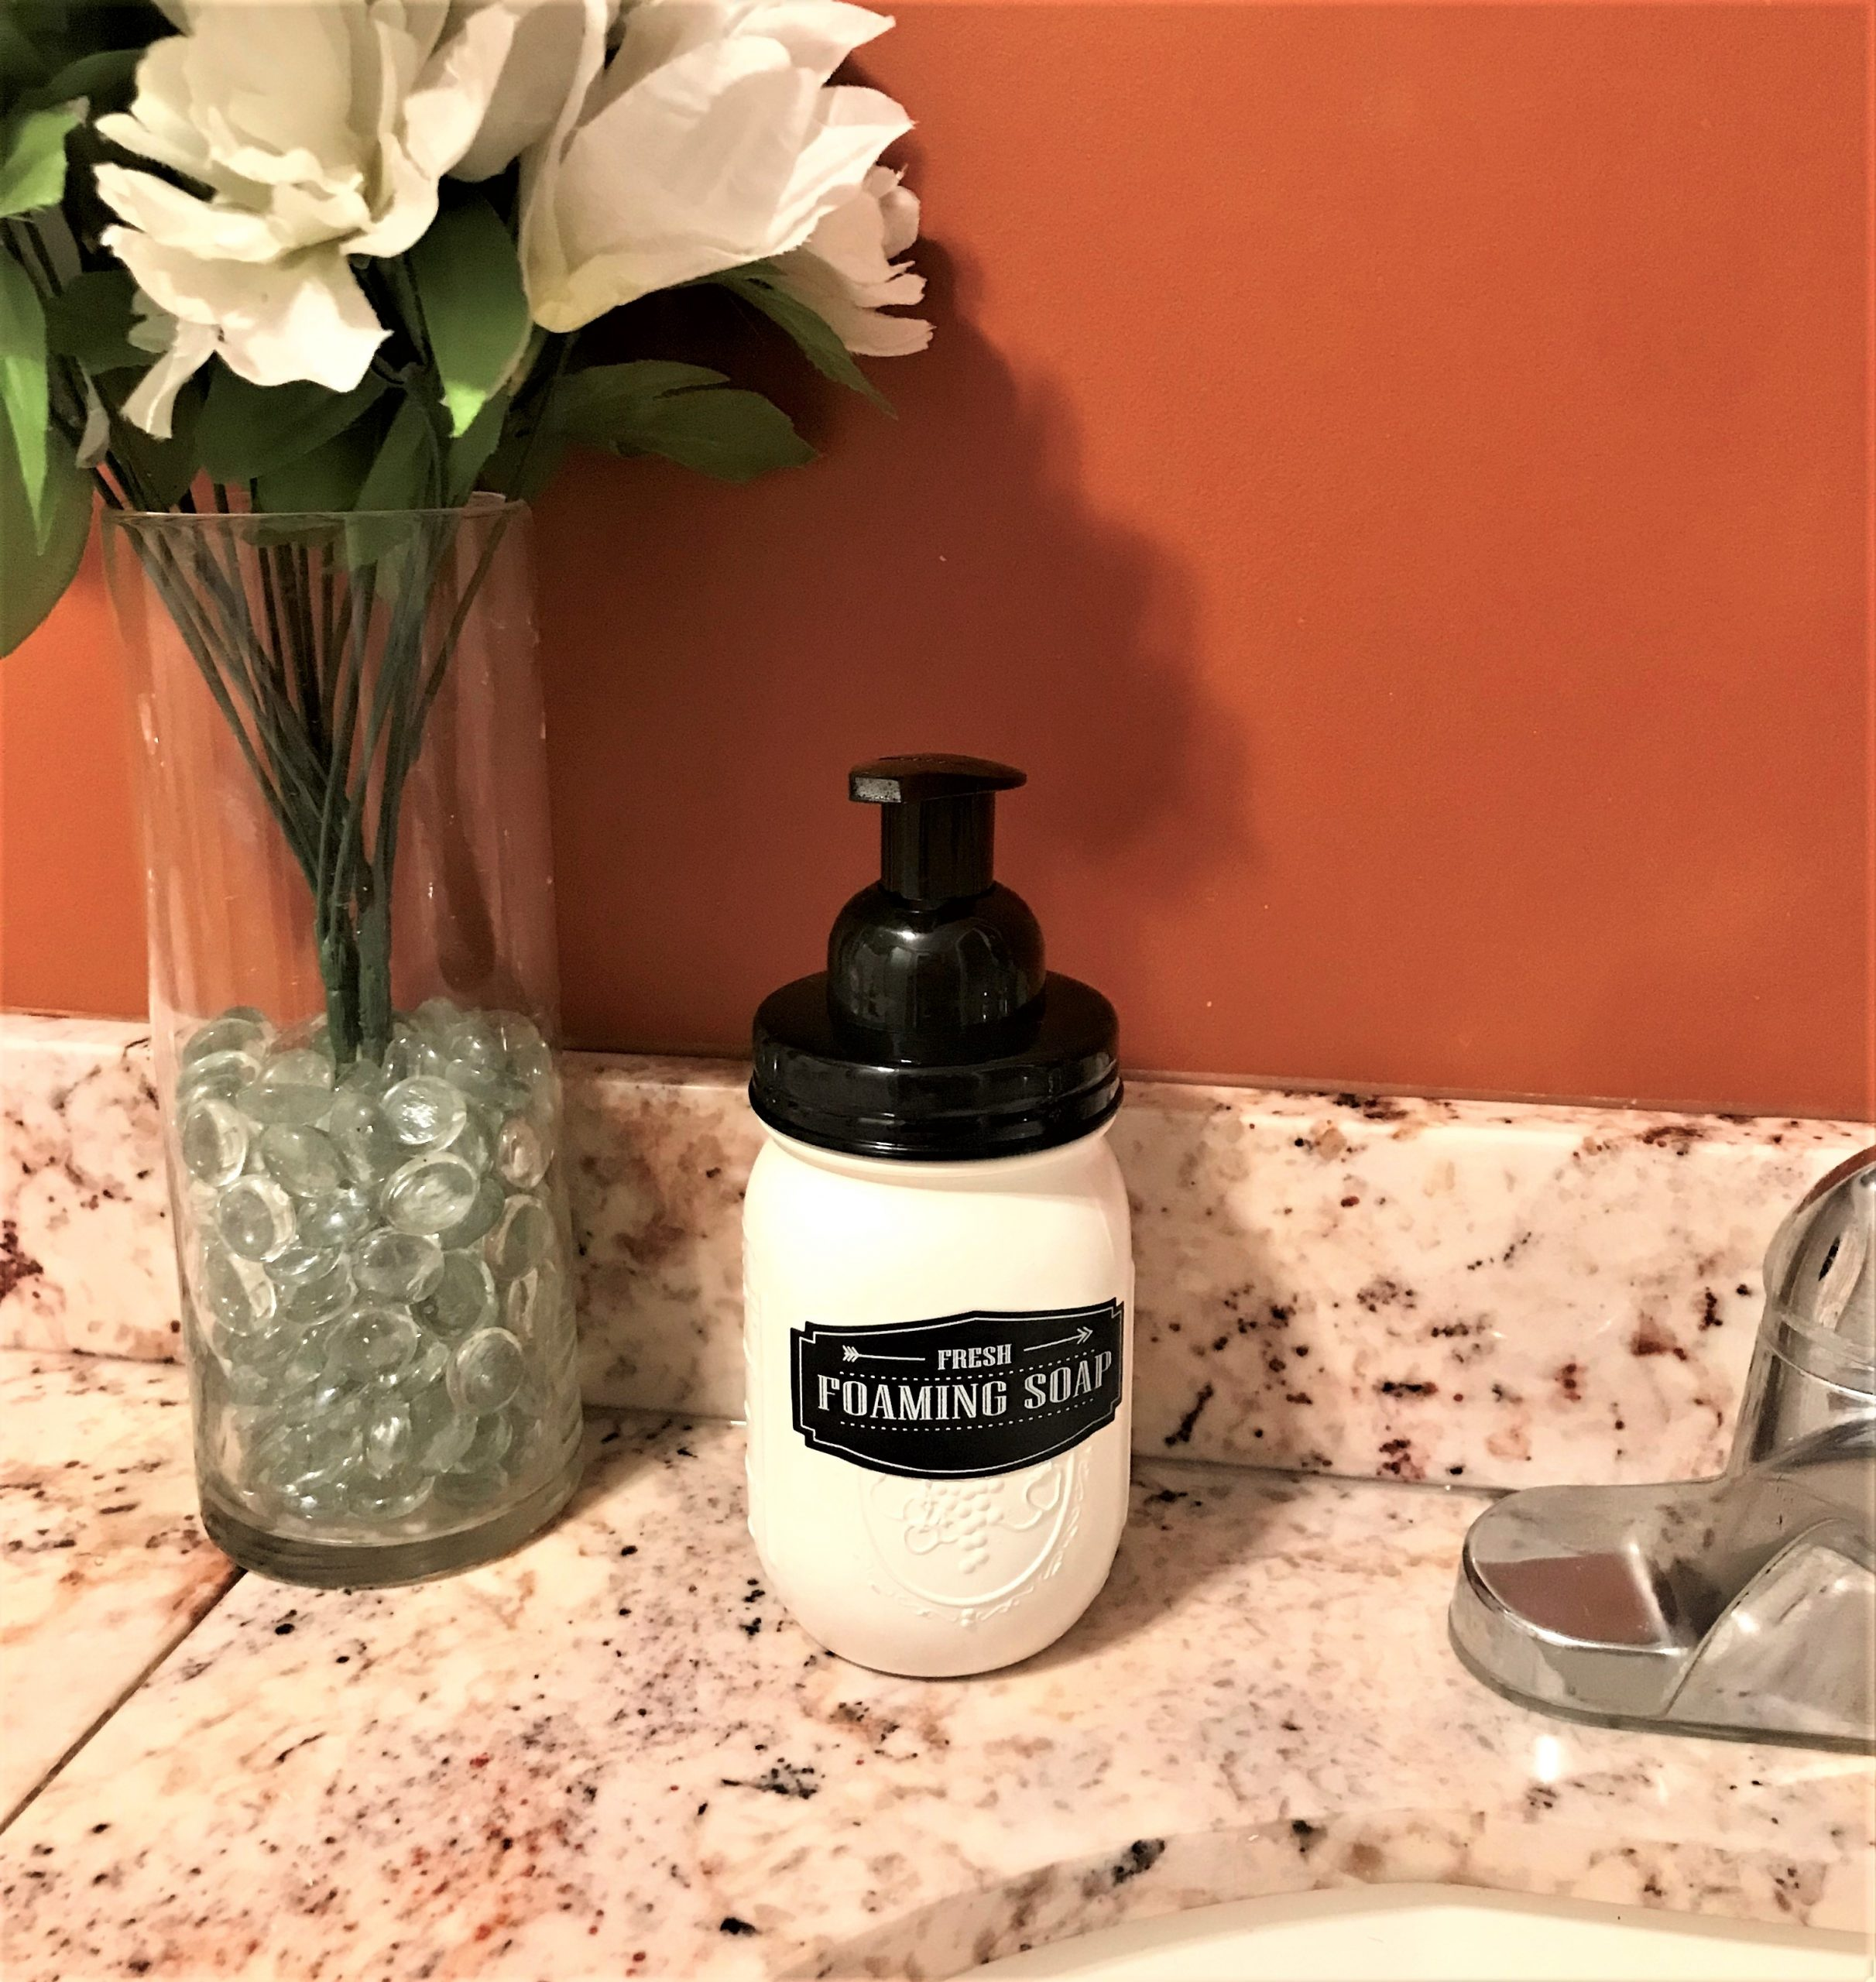 soap pump next to the bathroom sink